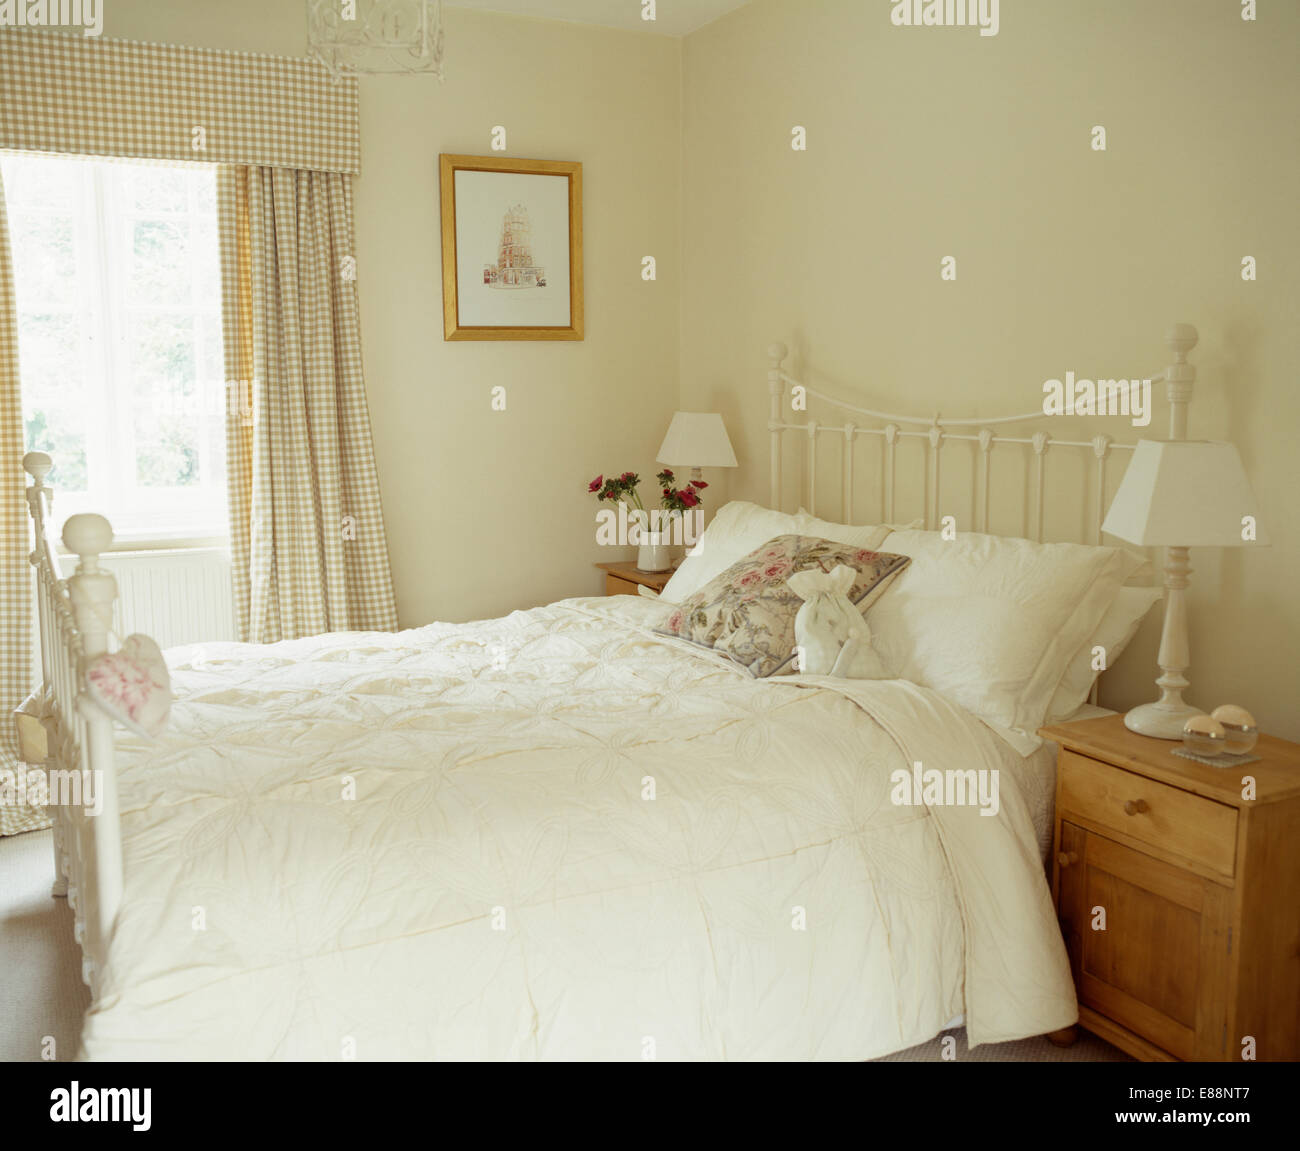 Stock Photo   White Quilt On White Painted Brass Bed In Simple Country  Bedroom With Cream+brown Checked Curtains